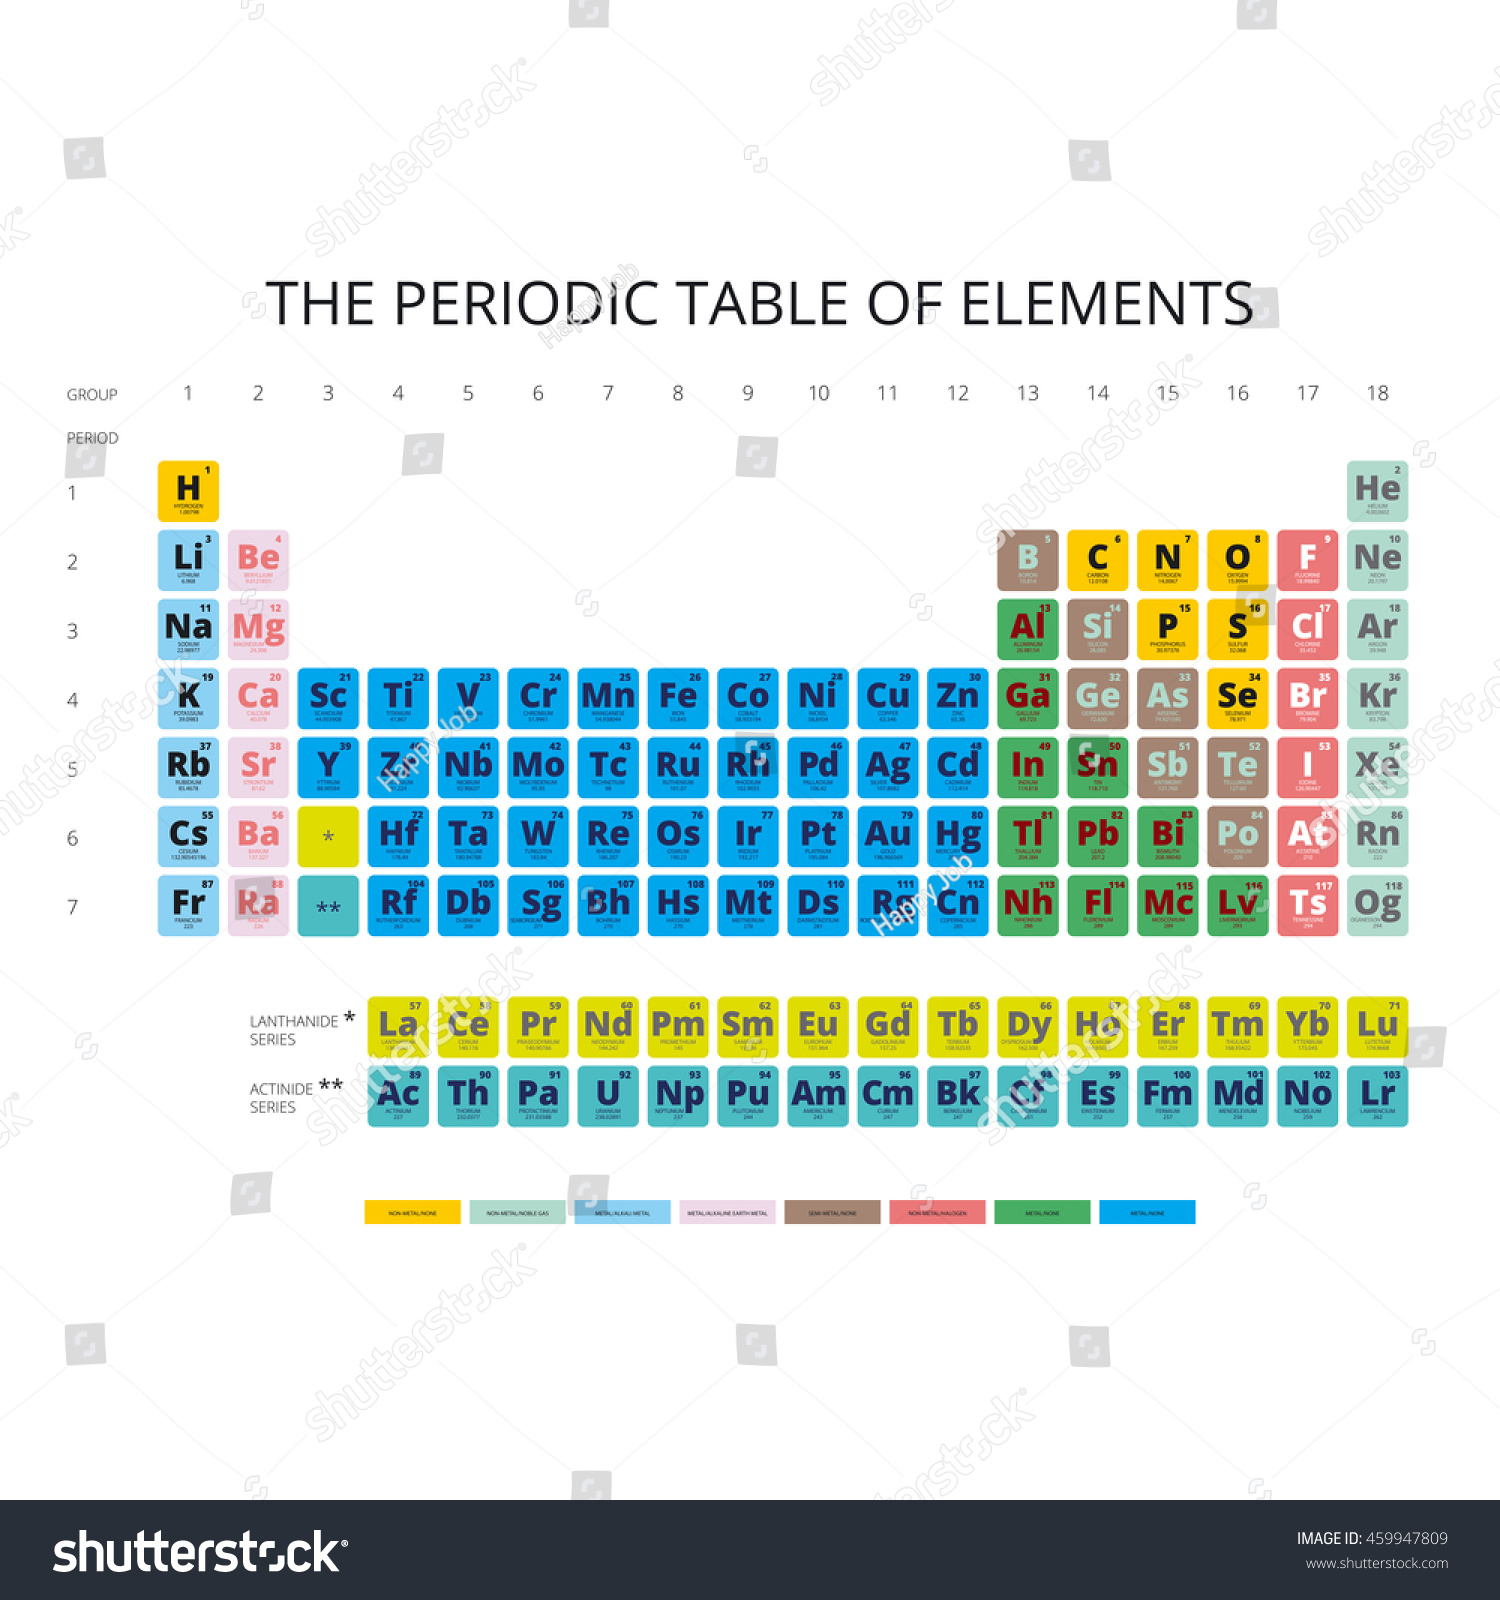 Periodic table elements symbol atomic numbercomplete stock vector hd periodic table of the elements with symbol and atomic numberplete periodic table chemistry urtaz Image collections